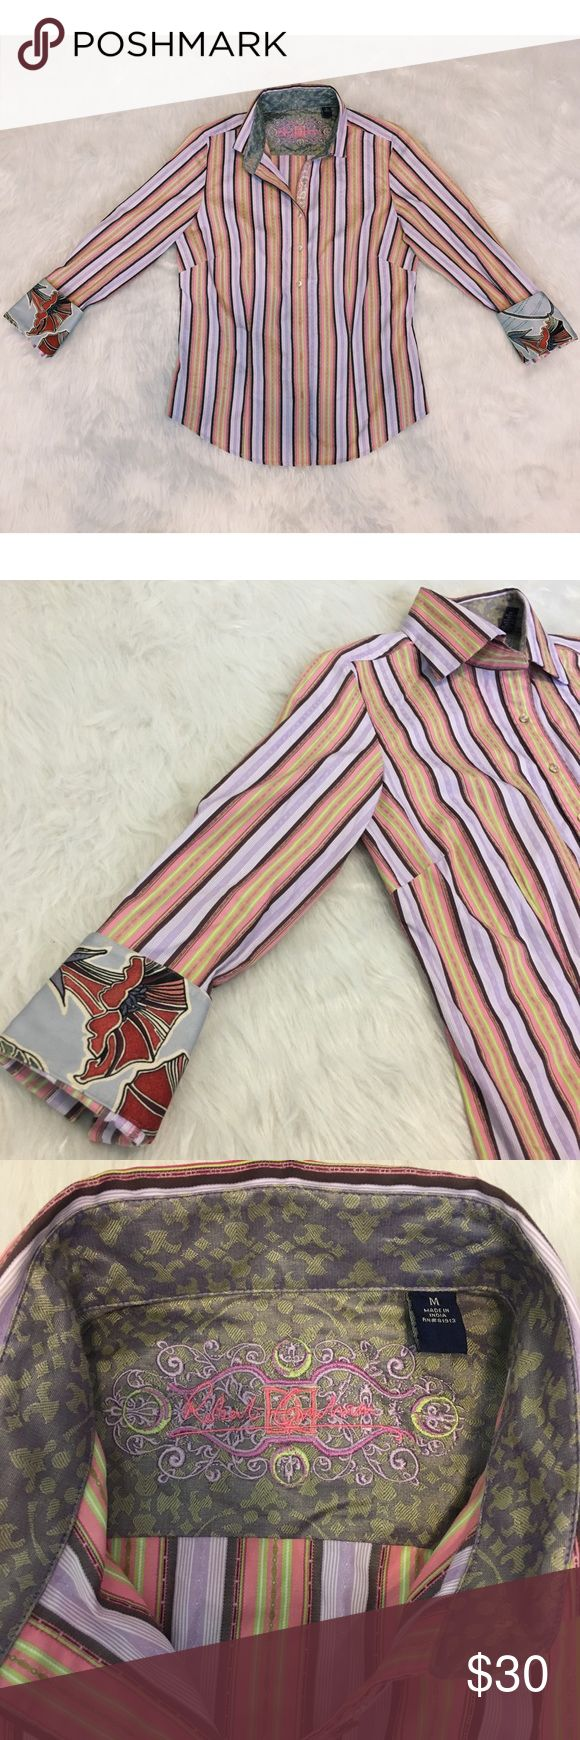 Robert Graham Striped colorful button down Gorgeous Robert Graham colorful striped button down shirt! Has some light blue and red floral cuffs on the sleeves and embroidery details by the buttons. The buttons also say Robert Graham on them! In great condition and would look stunning under a blazer! Size medium Feel free to ask questions or make an offer! :) Robert Graham Tops Button Down Shirts